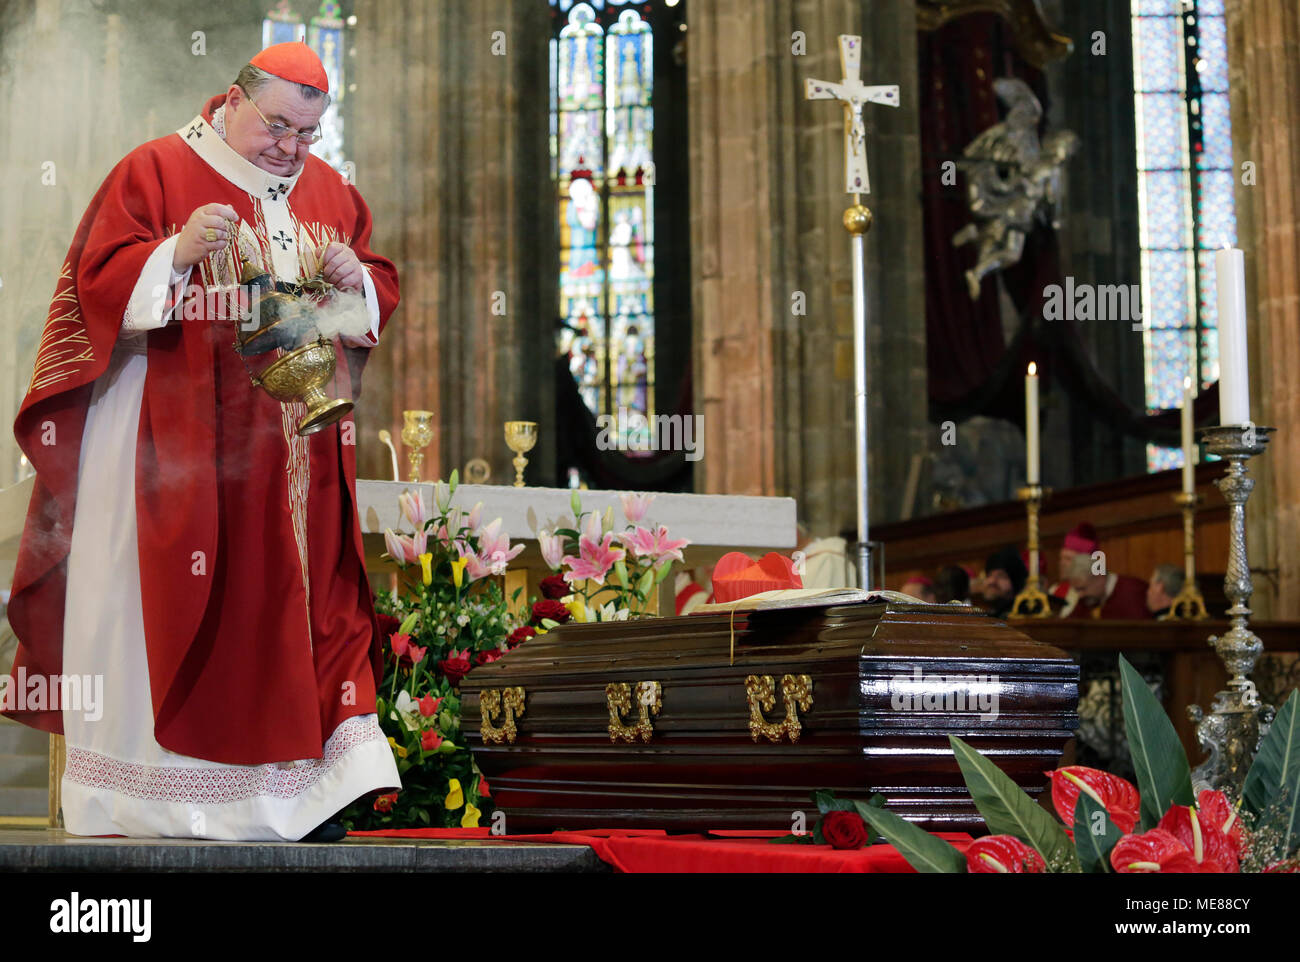 Church dignitaries and hundreds of church-goes paid homage to the memory of Cardinal Josef Beran (1888-1969), who was repatriated from the Vatican after an extended period of exile enforced upon him by the Communist regime, in the Saint Vitus Cathedral in Prague today, on Saturday, April 21, 2018. The mass was served by Prague Archbishop Cardinal Dominik Duka (photo). 'I welcome my glorious predecessor,' Duka said at the opening of the mass. Duka also turned to the current events. He said the moments when Communists despite their electoral defeat were demanding an increasing share of power, we - Stock Image